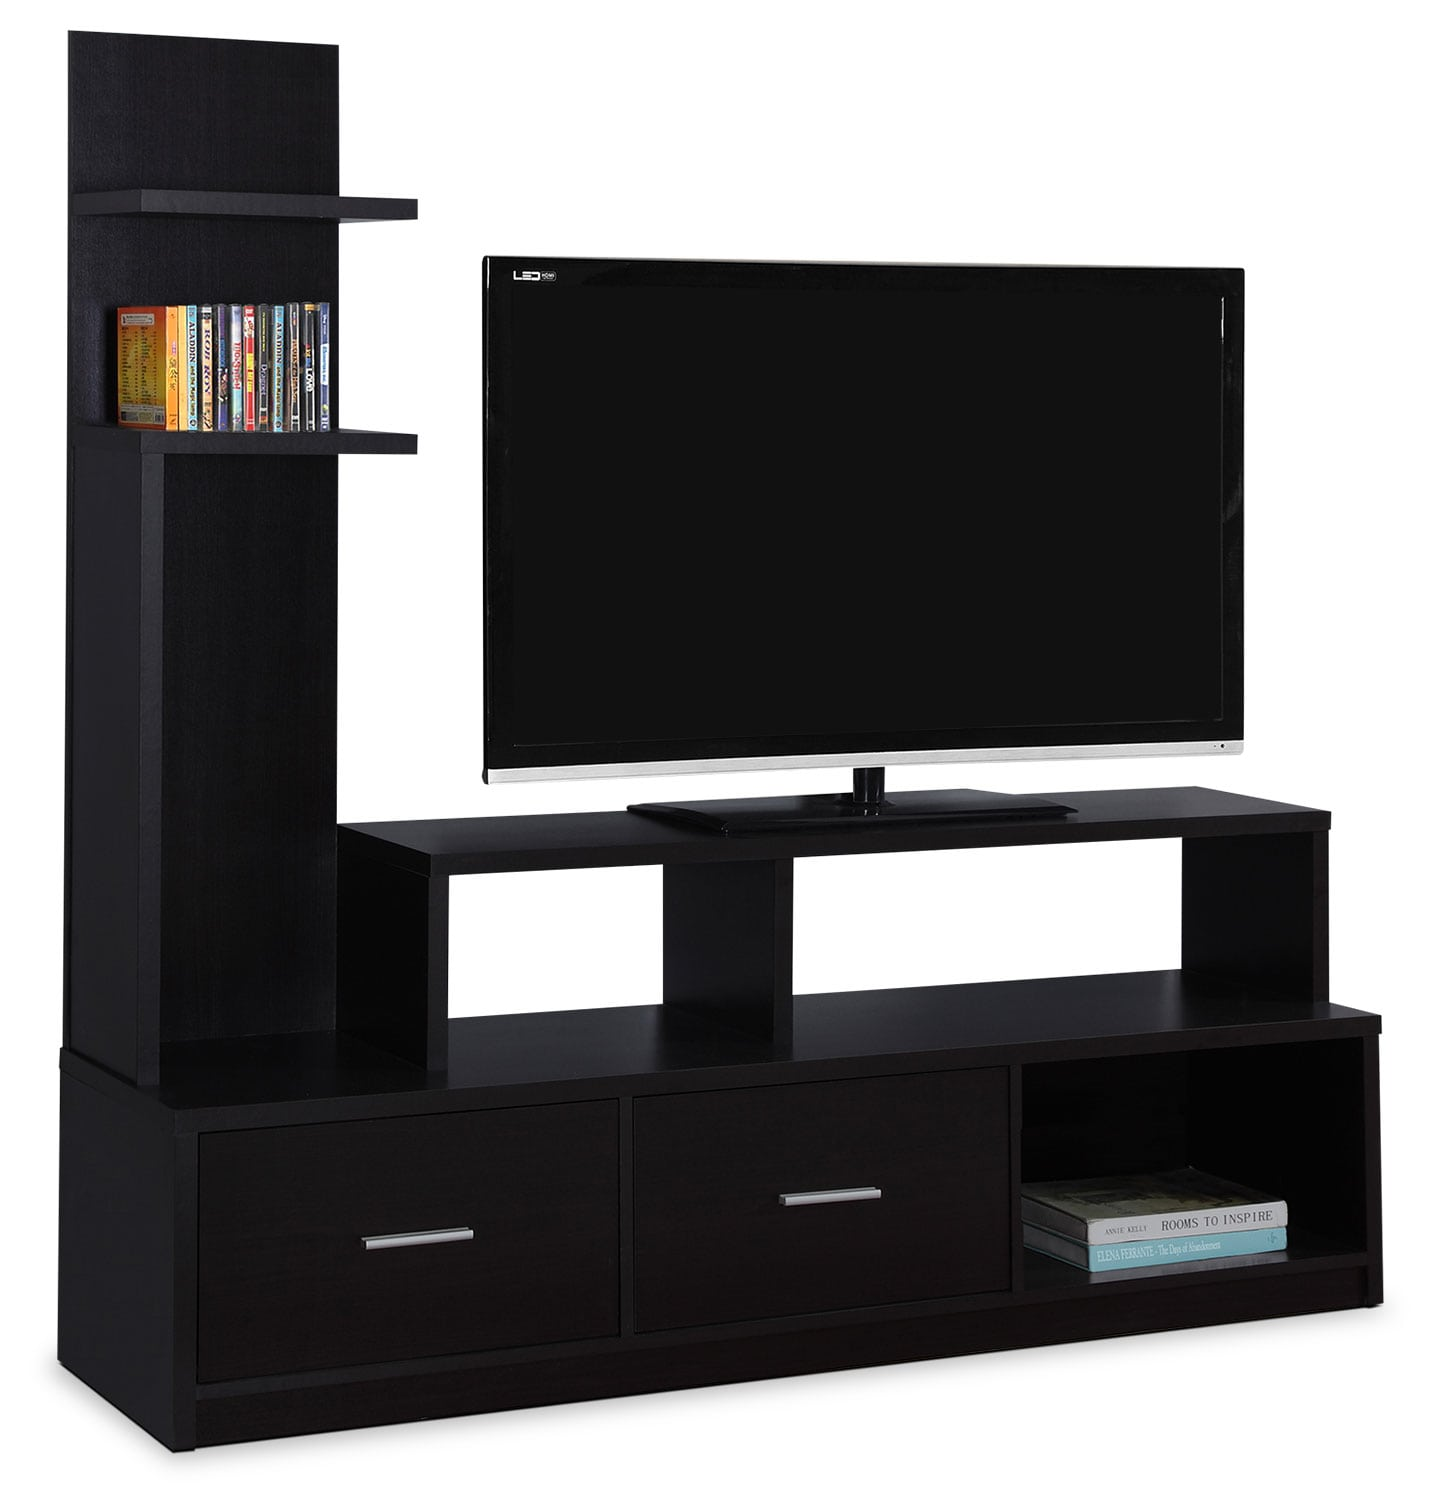 online only  ari tv stand  cappuccino  leon's - hover to zoom